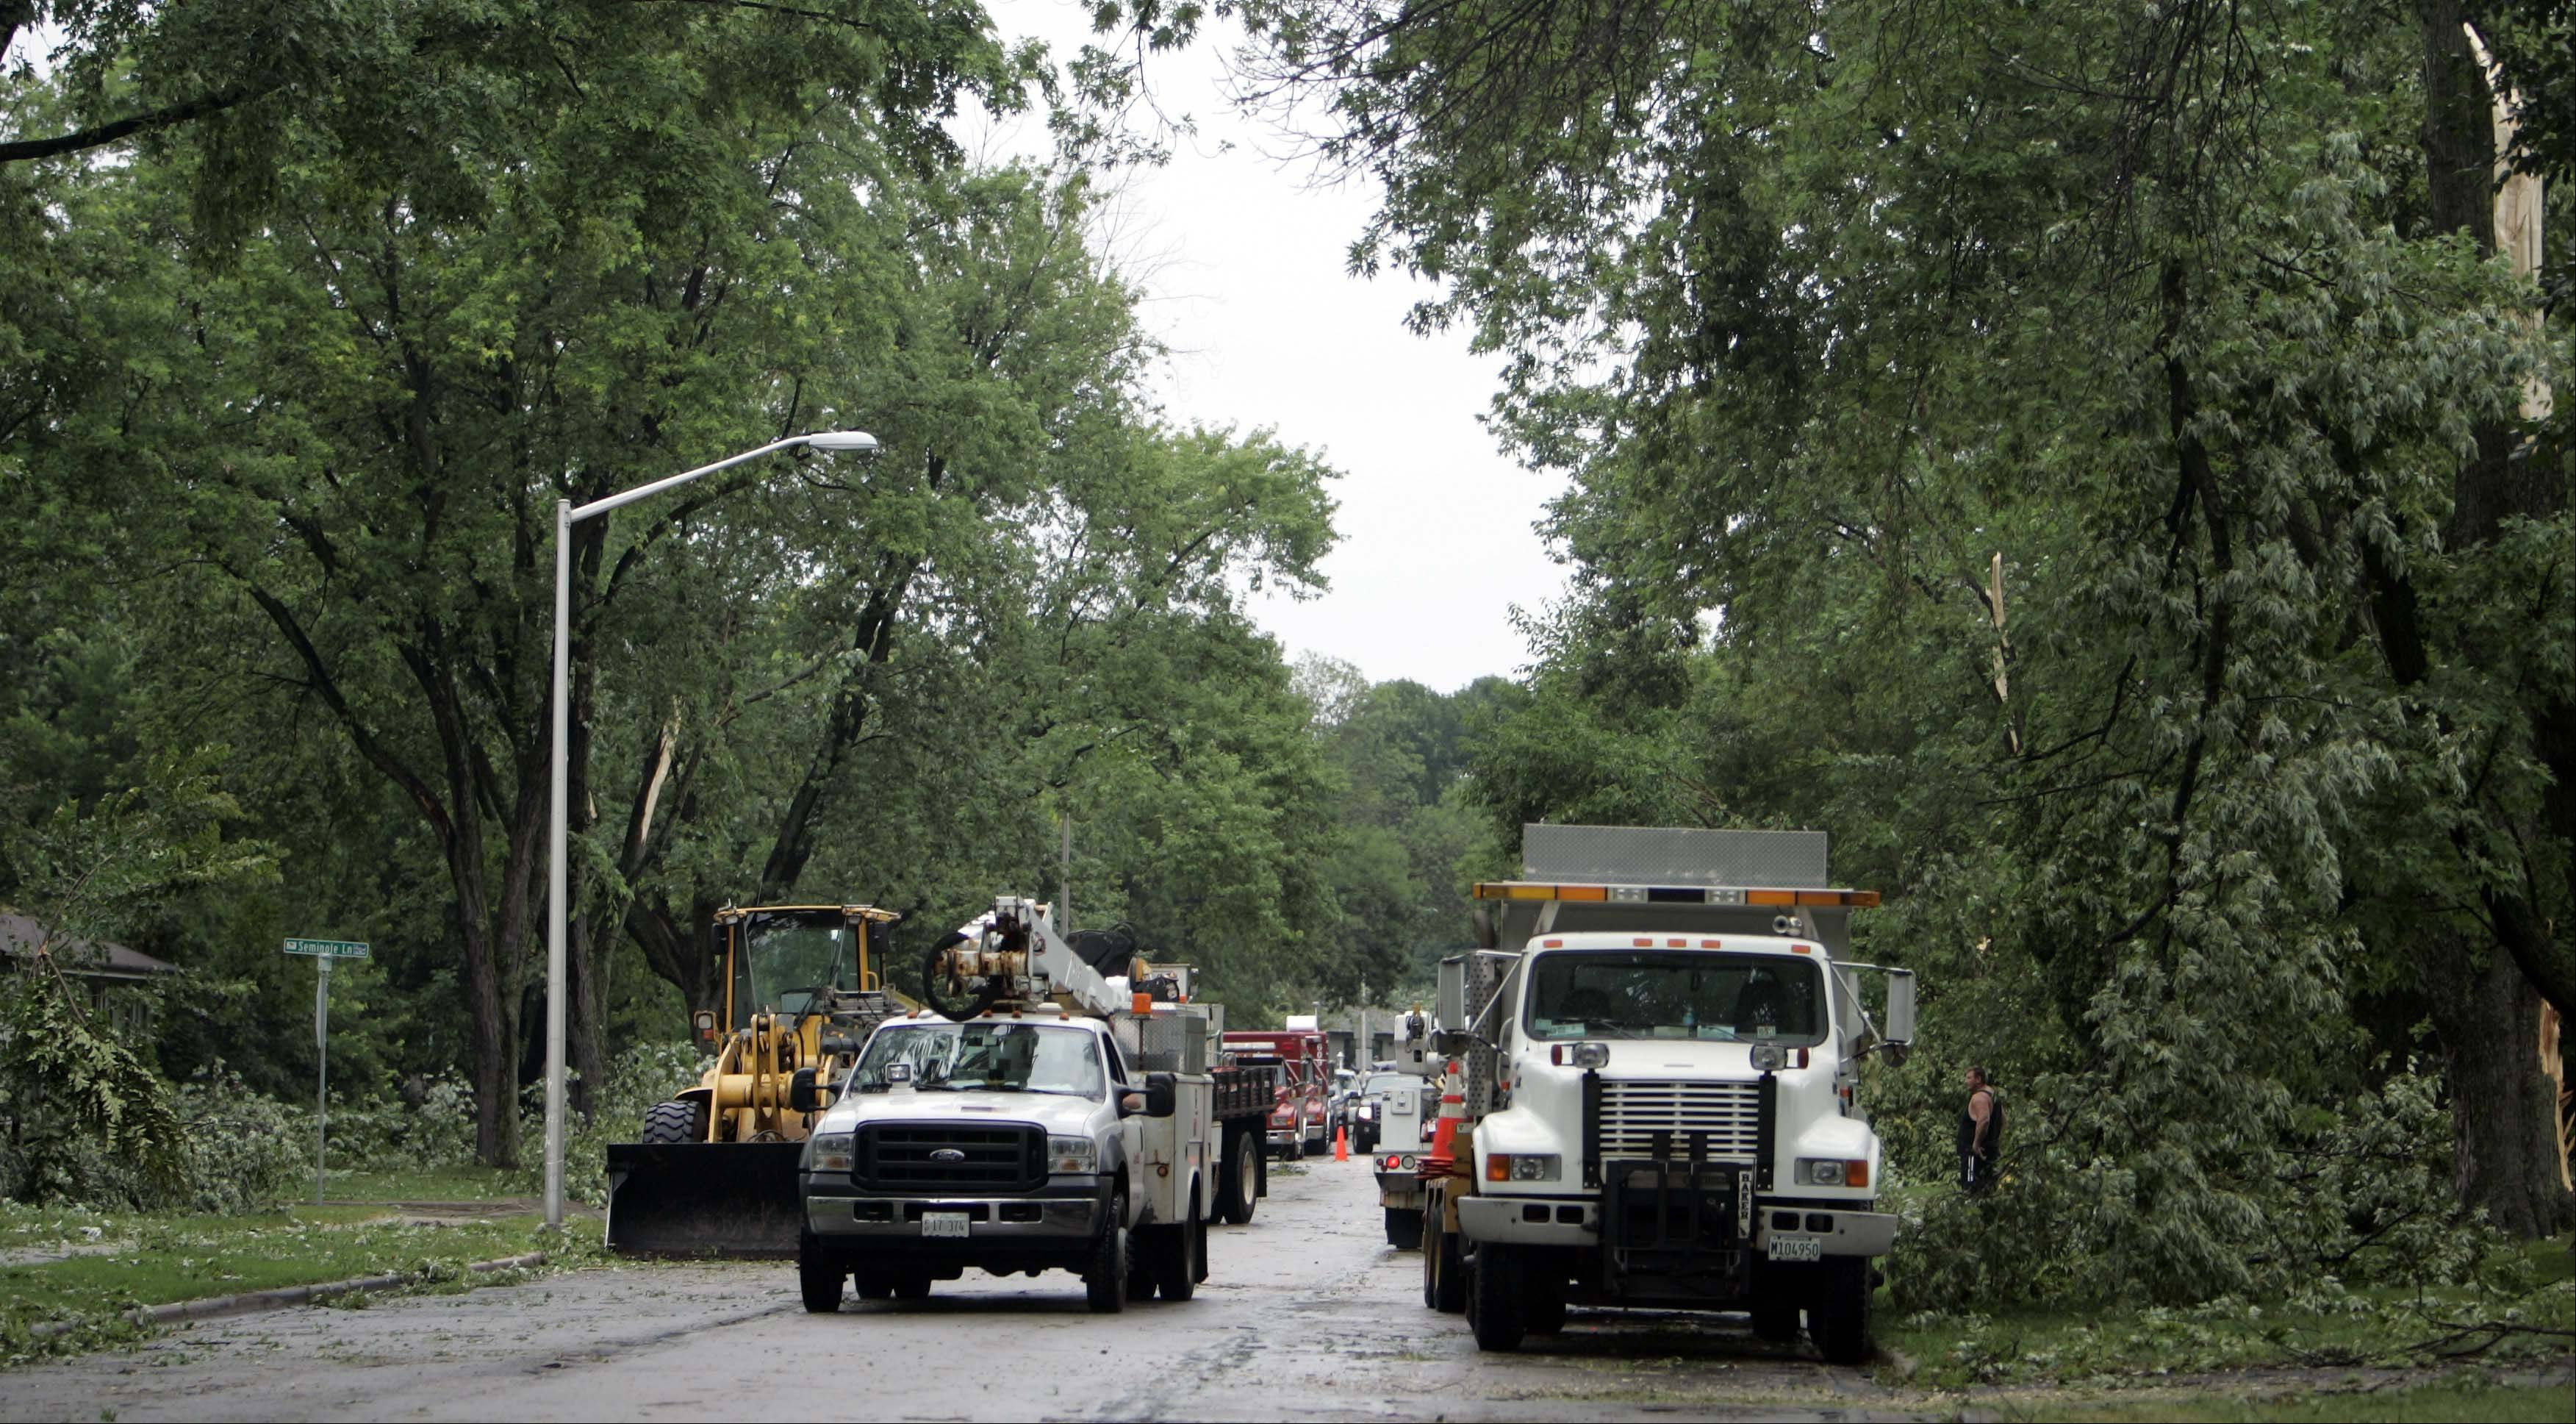 Crews removed downed trees from Thunderbird Trail in Carol Stream Thursday. The village received mutual aid assistance from nearby towns after declaring a state of disaster.